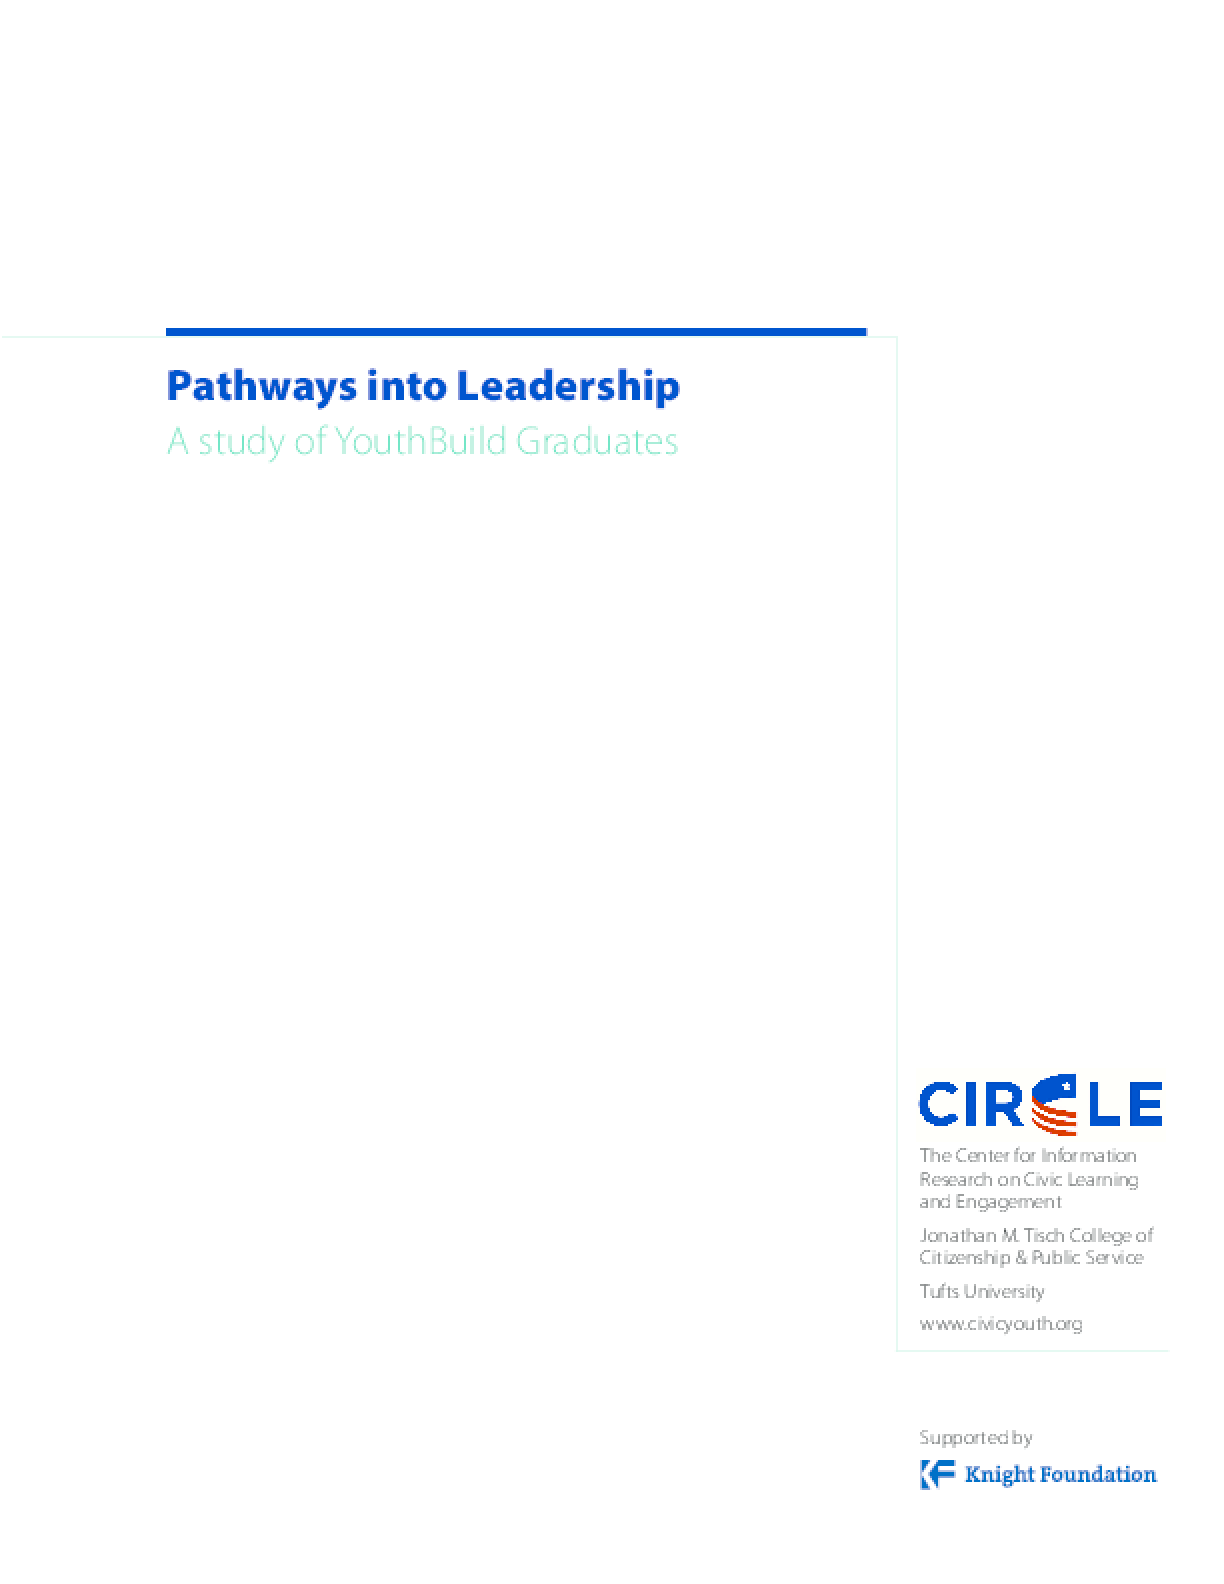 Pathways into Leadership: A study of YouthBuild Graduates